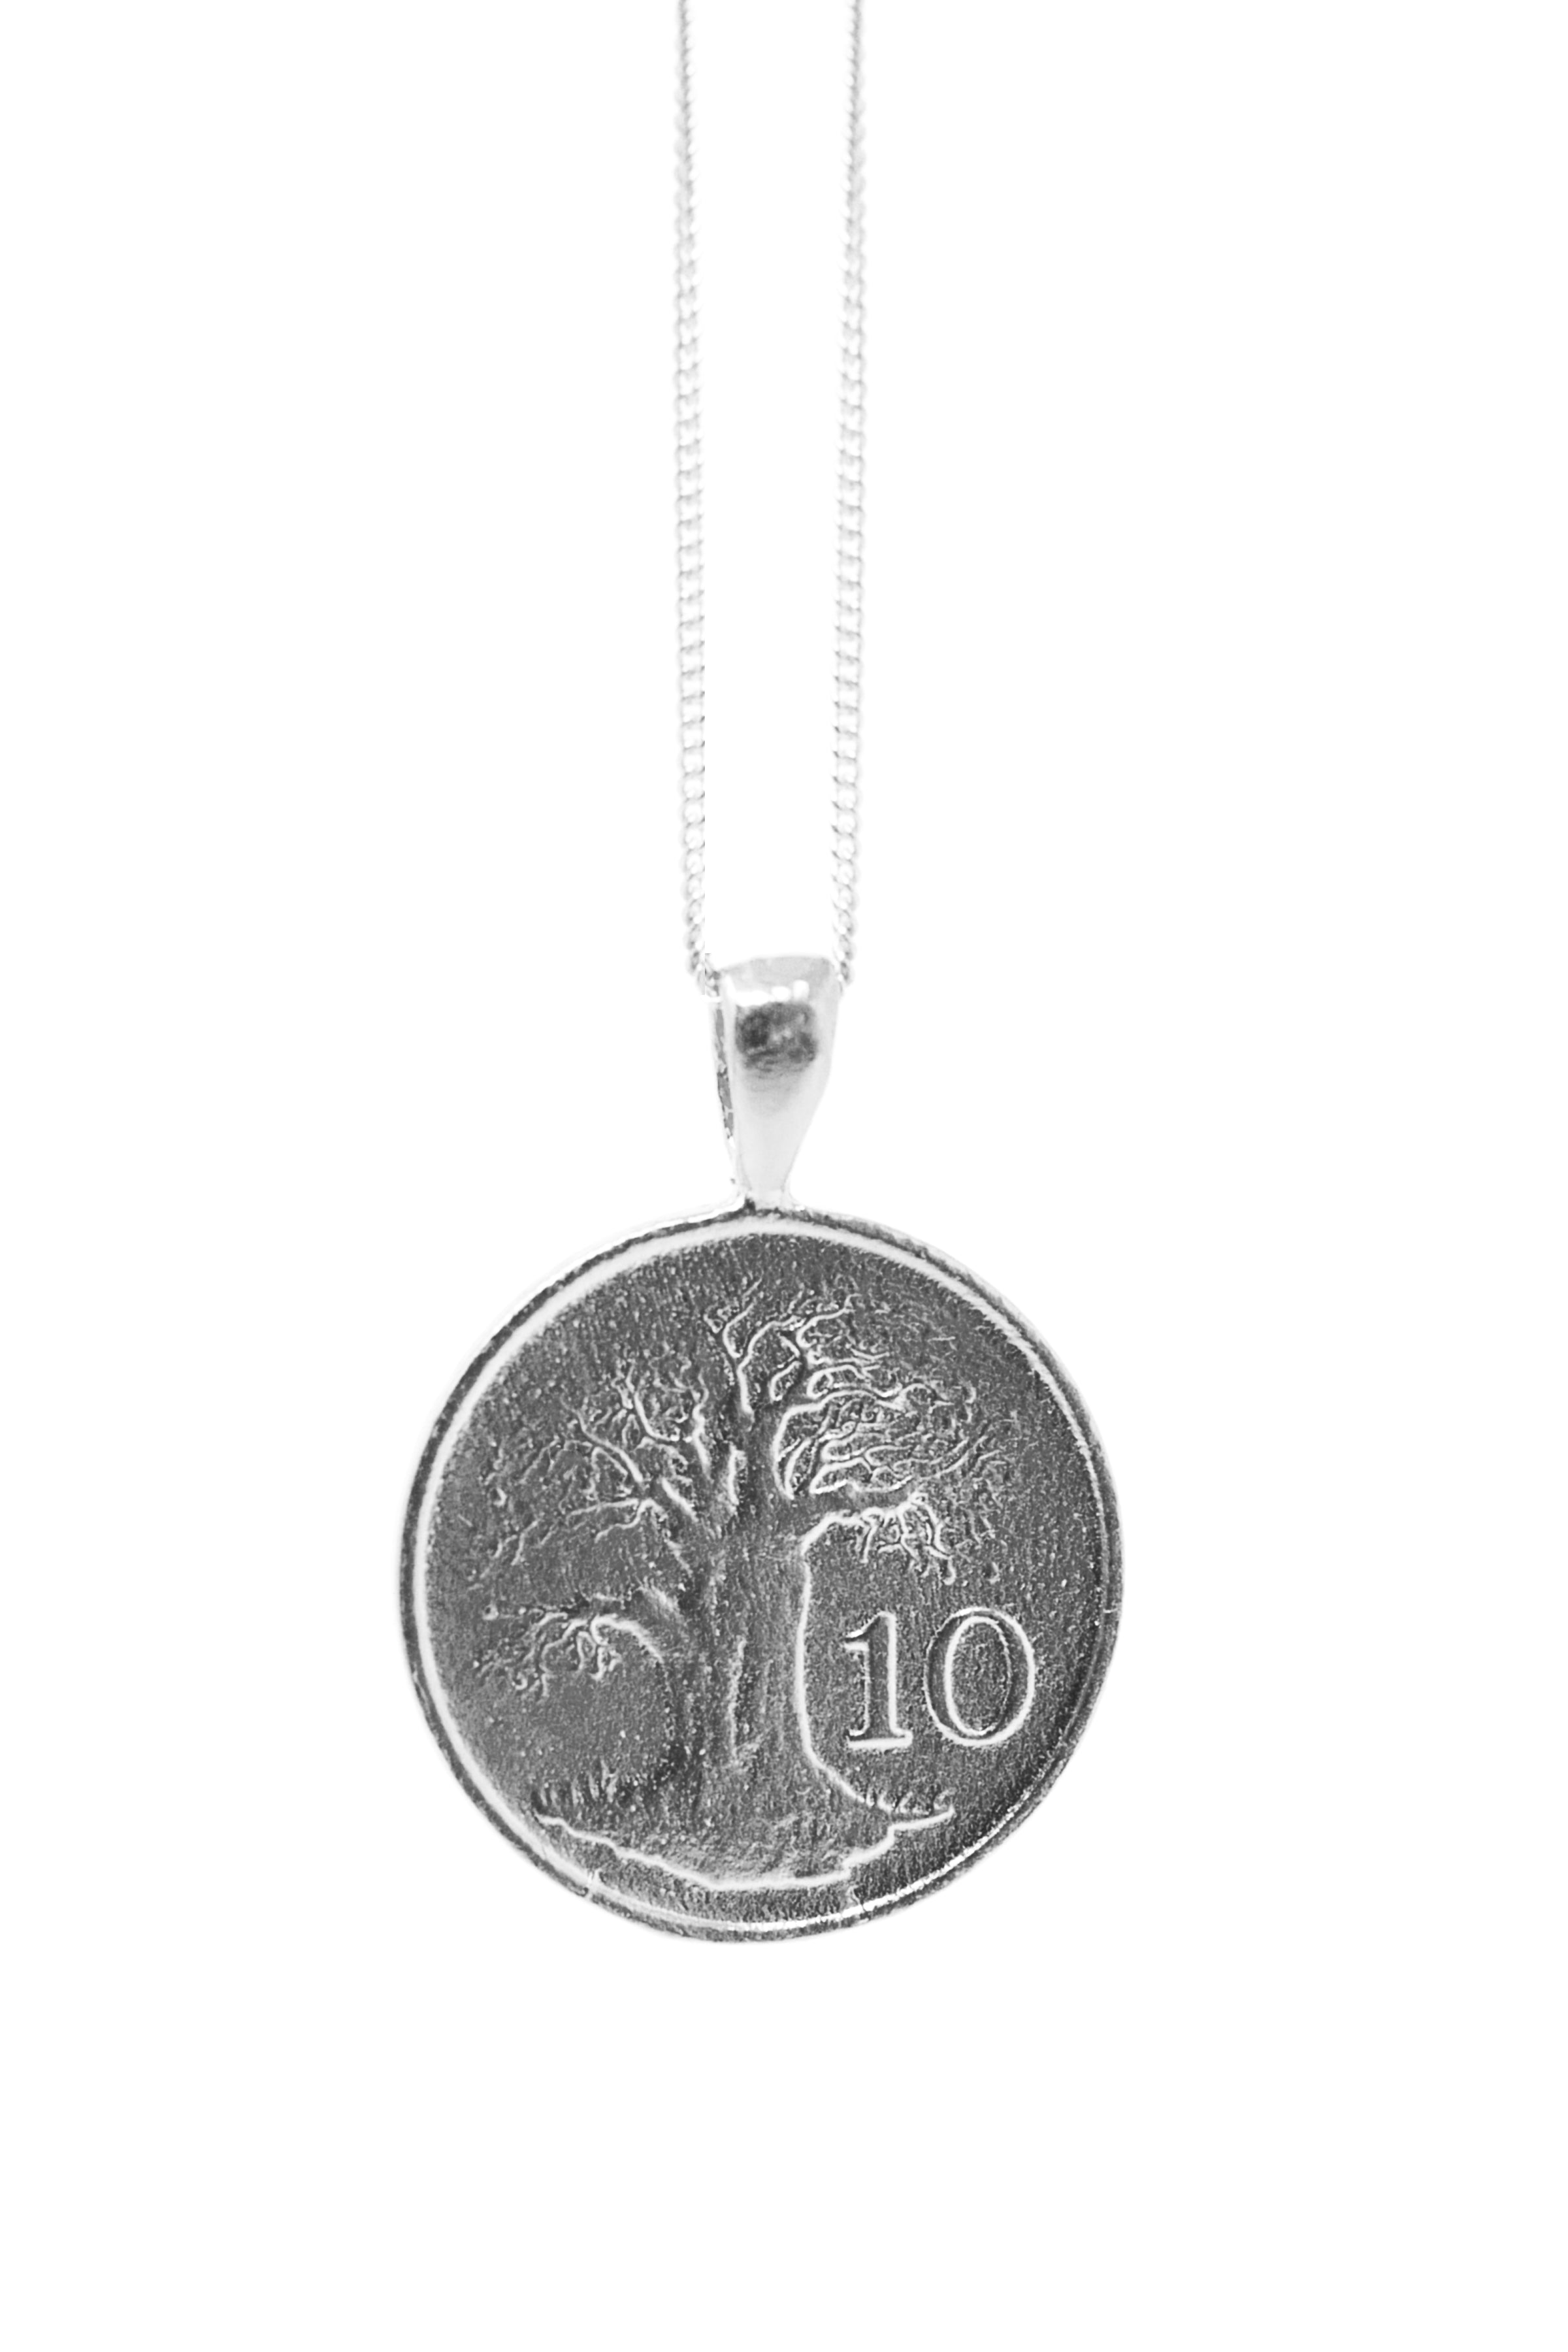 THE ZIMBABWE Bird and Baobab Coin Necklace